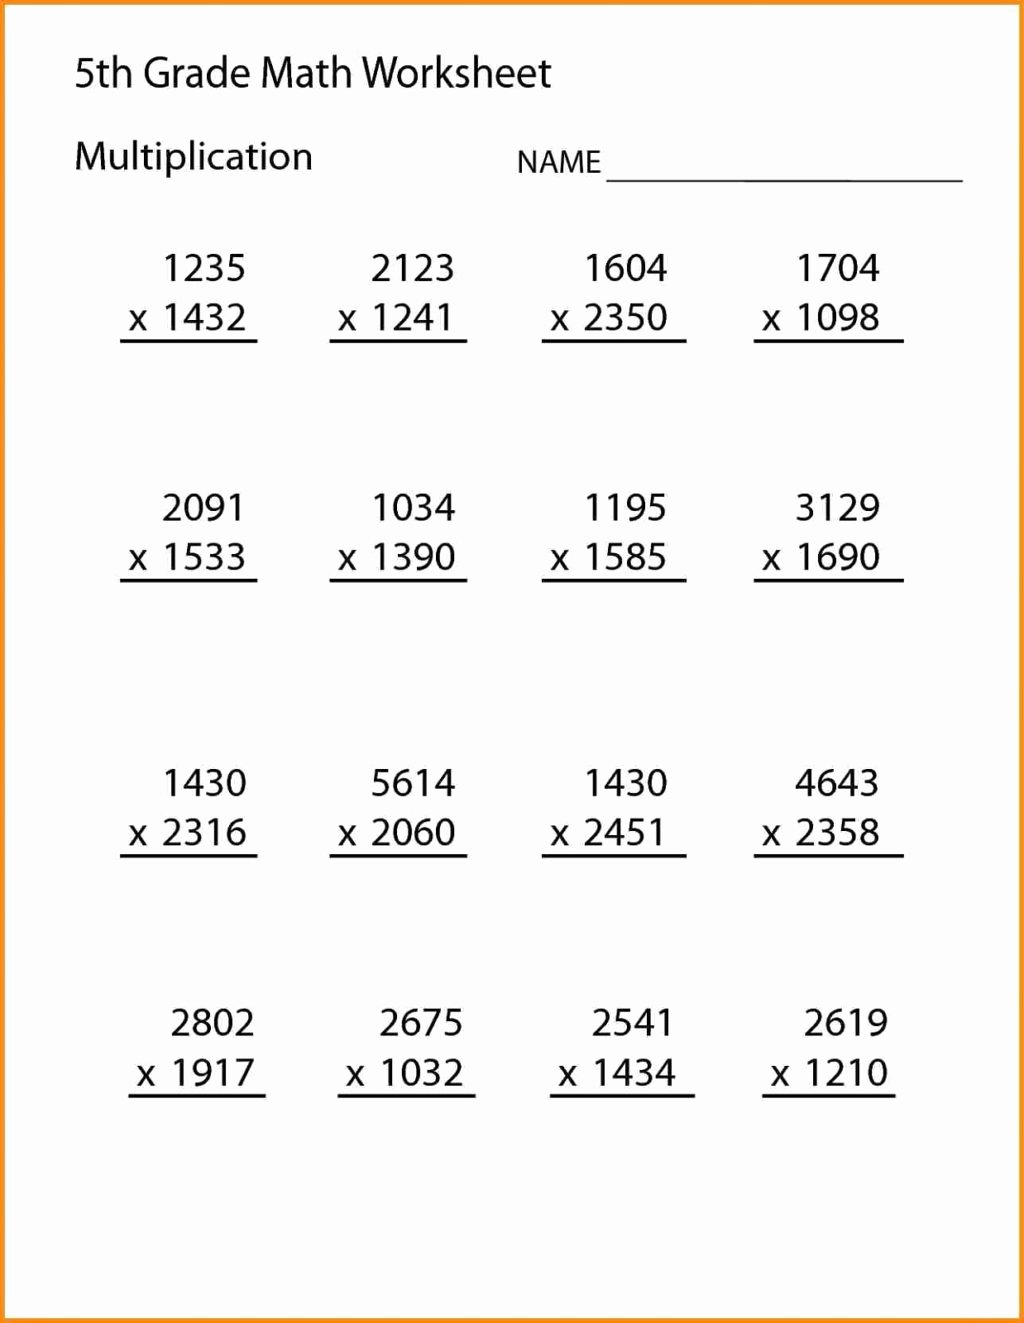 fifth grade math worksheets multiplication worksheettable shelter reading online free games 1024x1323